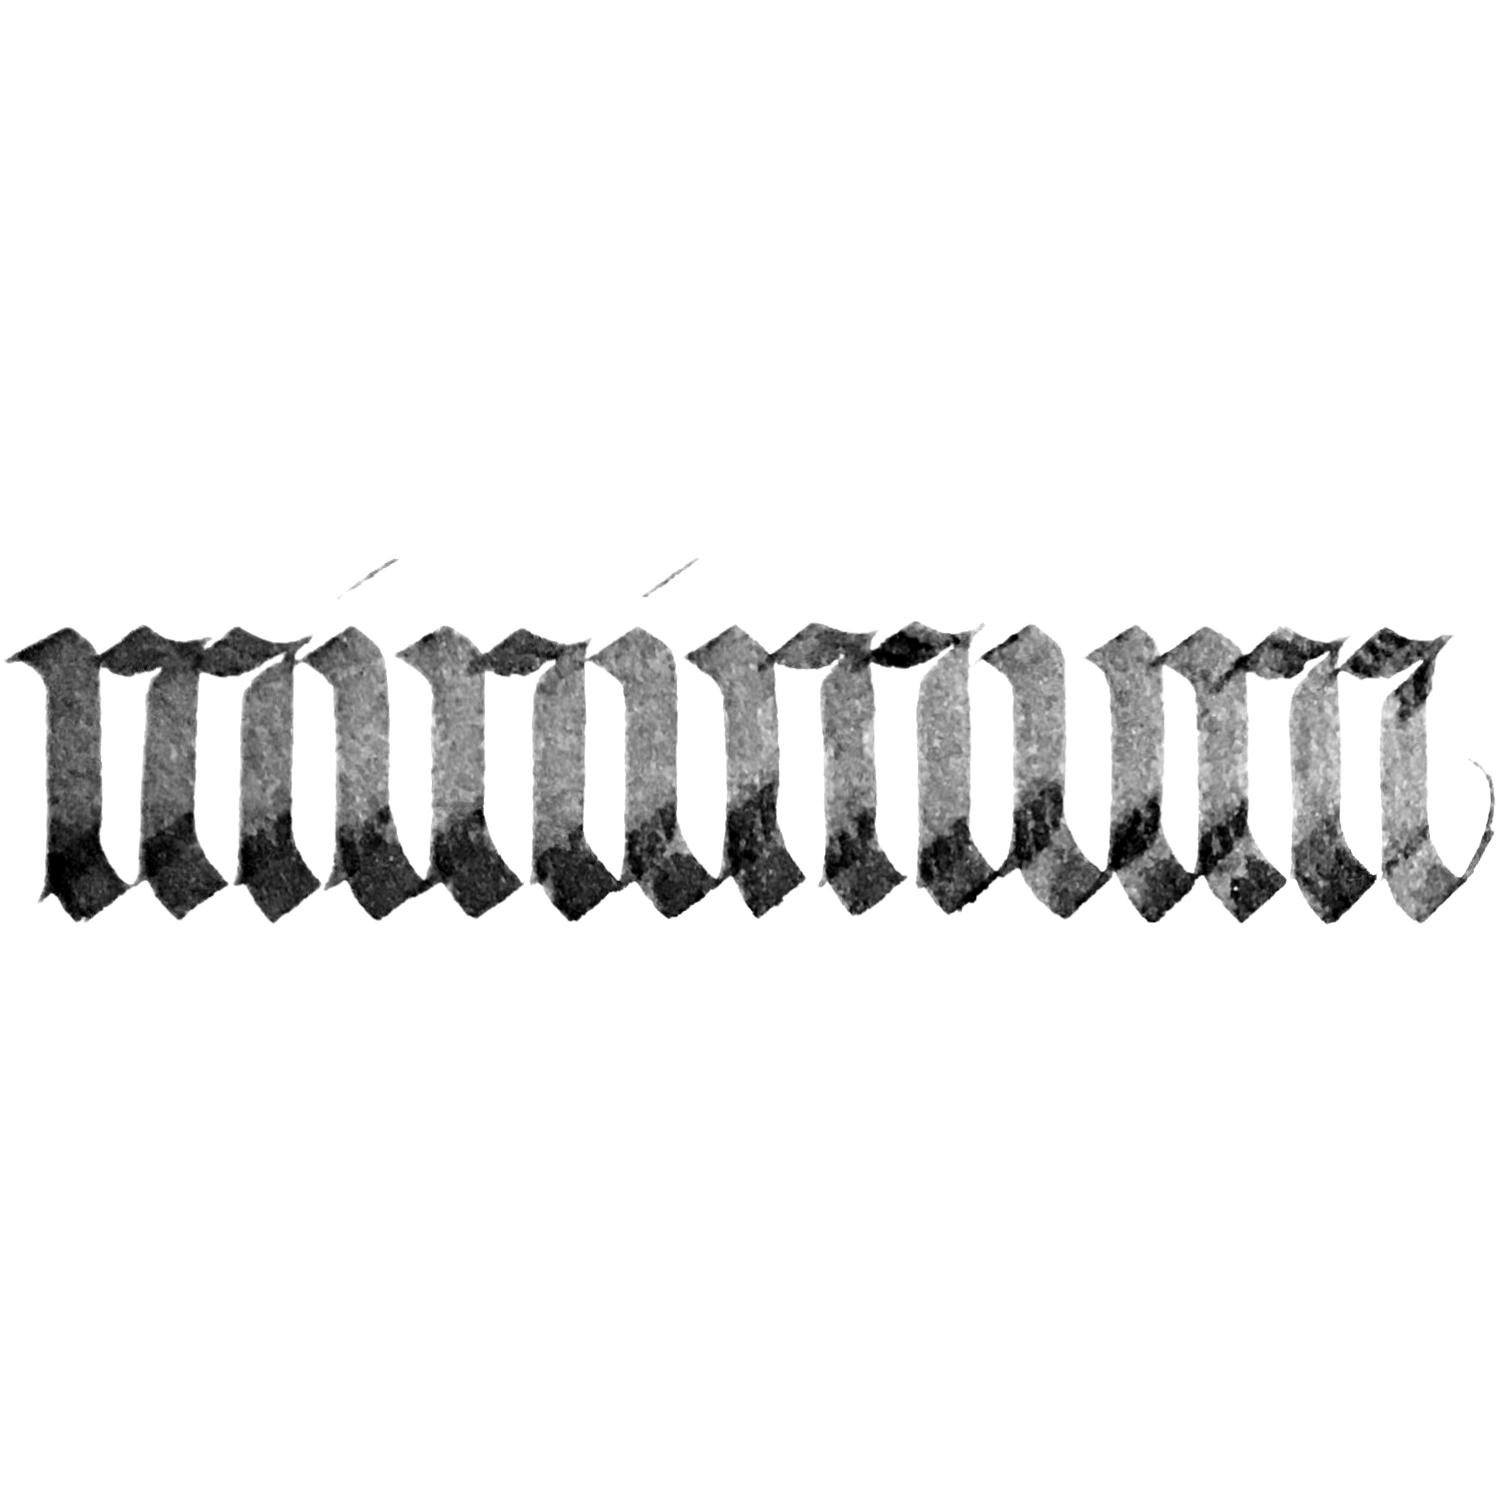 Minimum in Fraktur // calligraphy by Chavelli www.chavelli.com